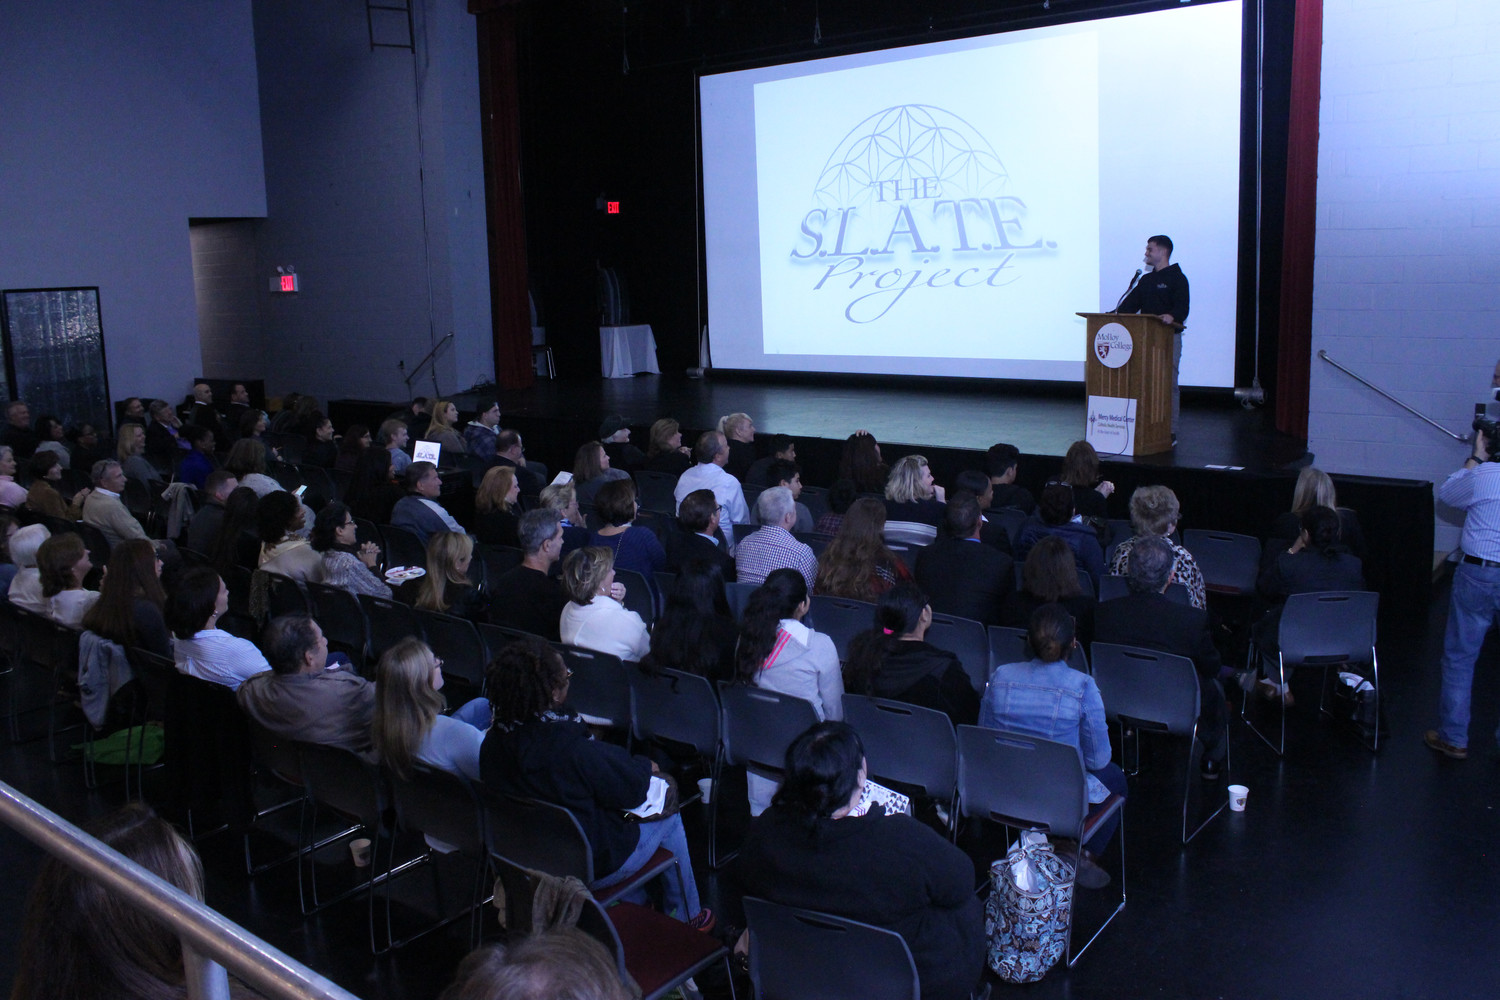 Steven Dodge, who was one of several speakers at an opioid symposium at Molloy College last Saturday, talked about his personal experiences with drug addiction, and his organization, the SLATE Project.